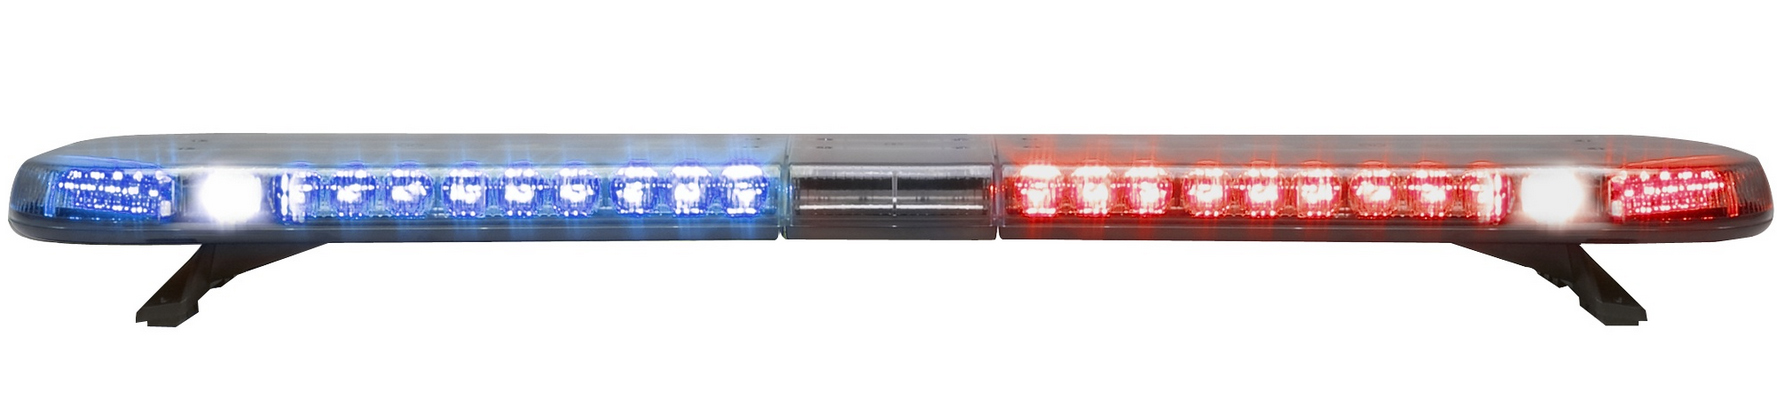 Whelen justice super led lightbar promo strobesnmore quick view aloadofball Images